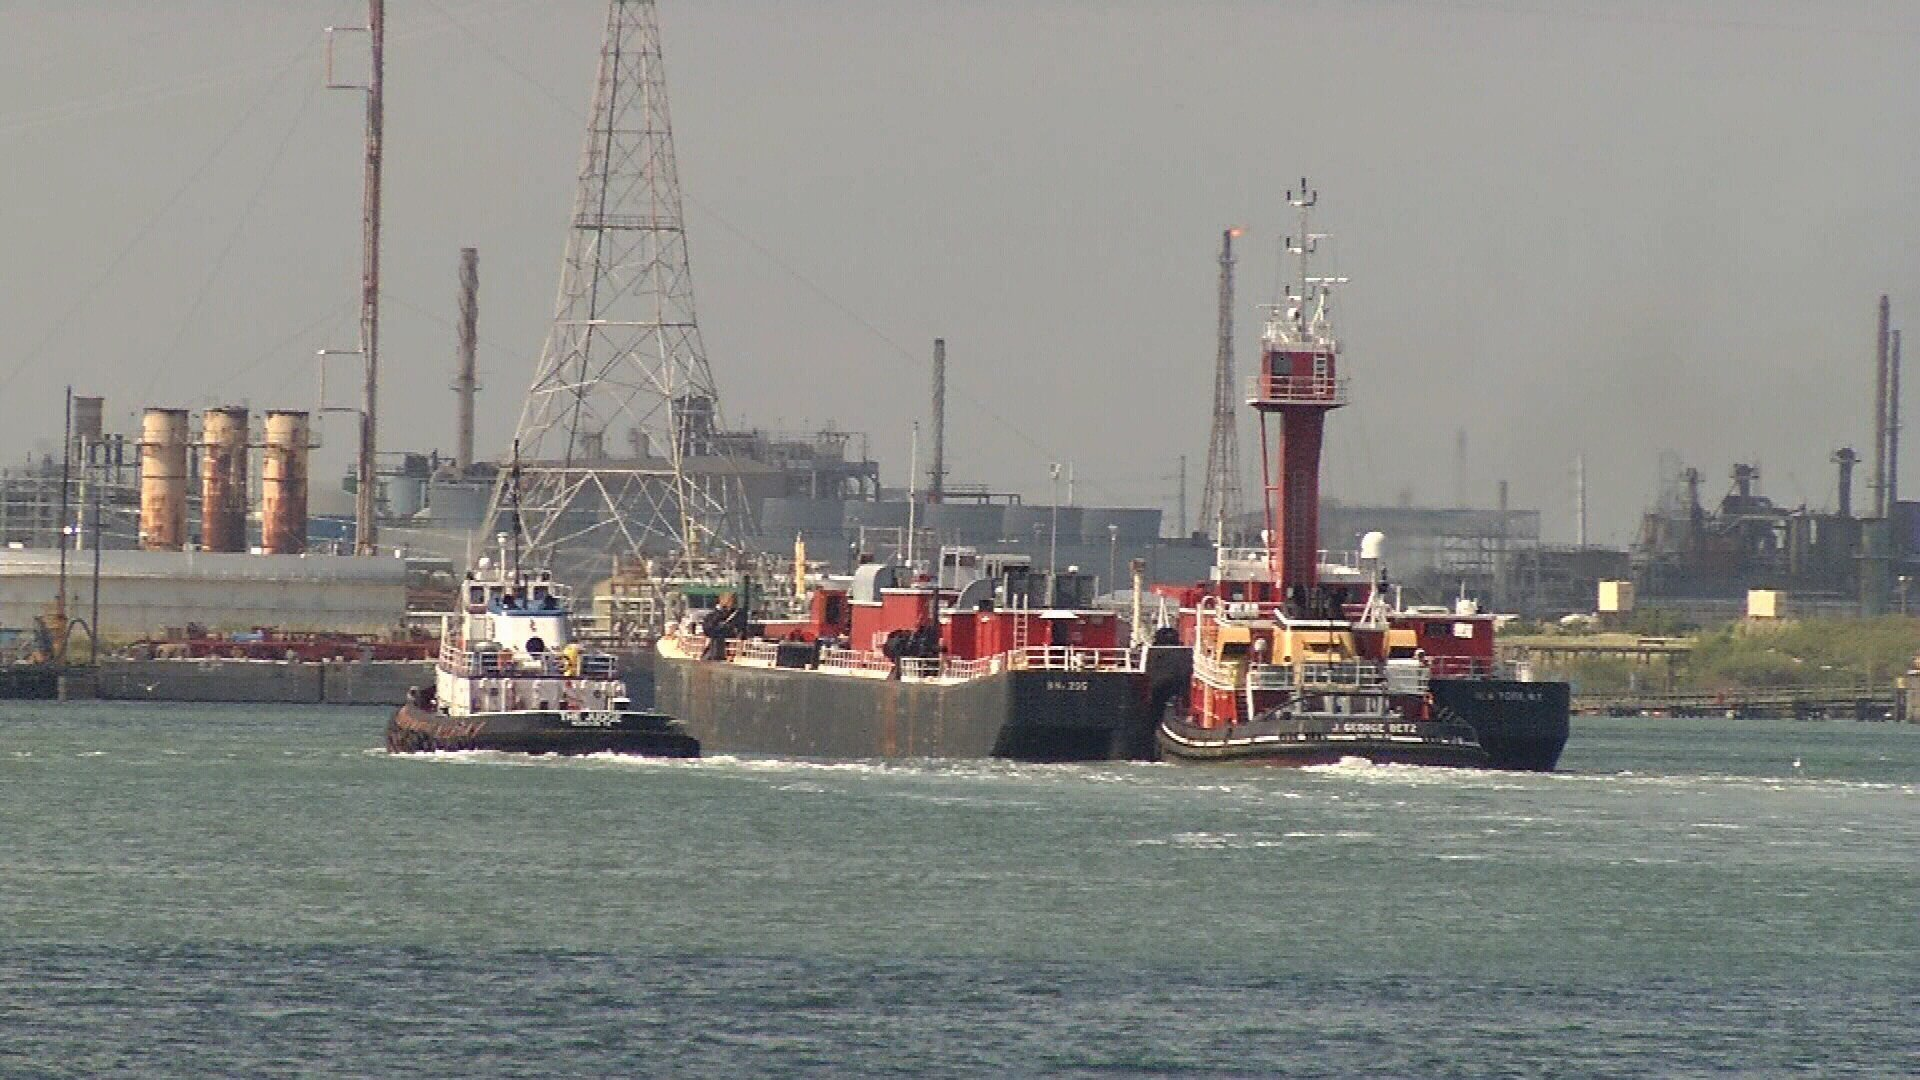 Port officials say it is important to widen and deepen the ship channel as Port traffic grows. (KRISTV)